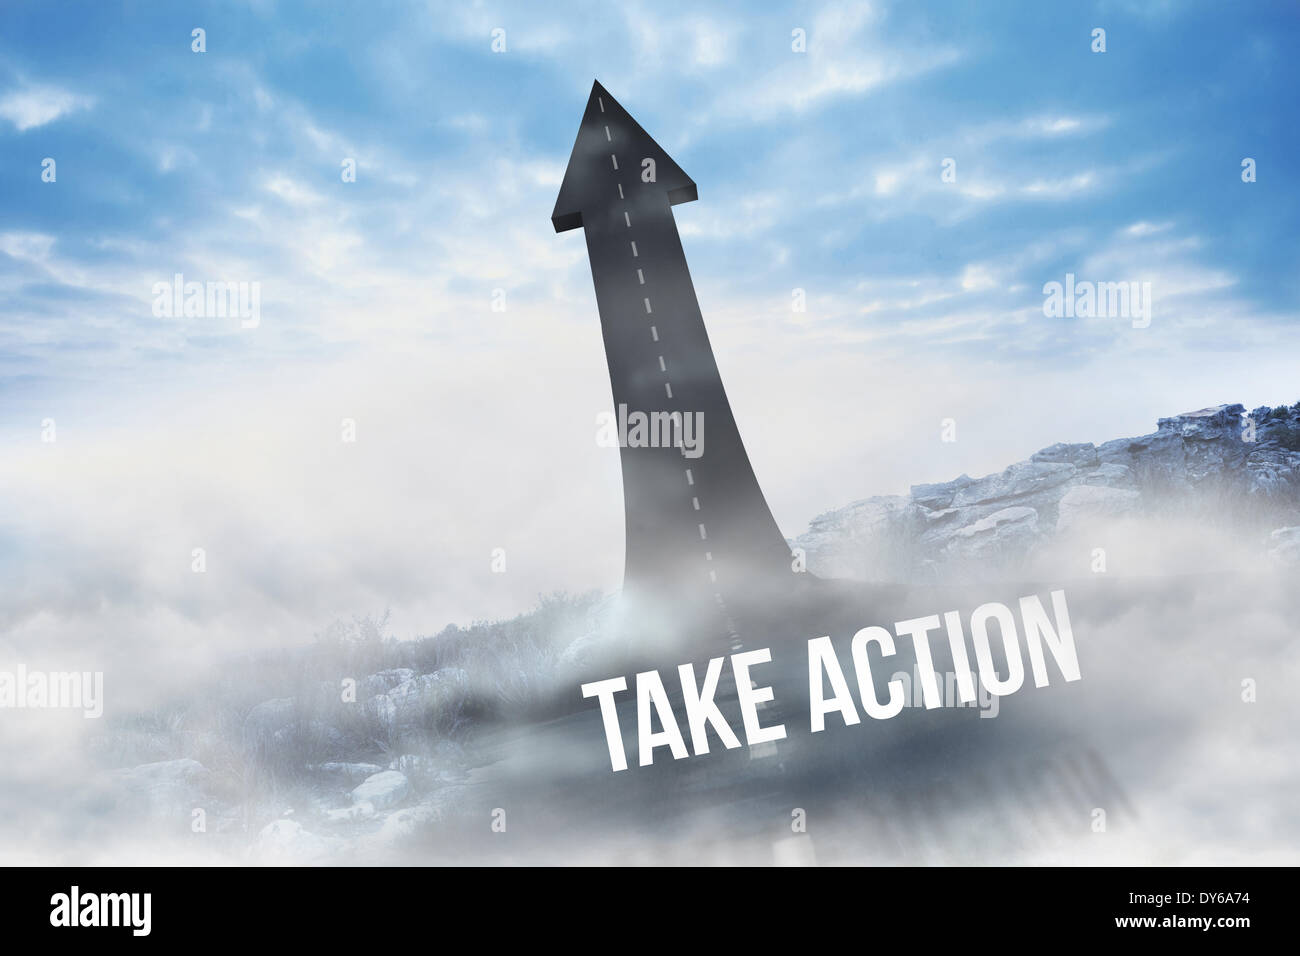 Take action against road turning into arrow - Stock Image